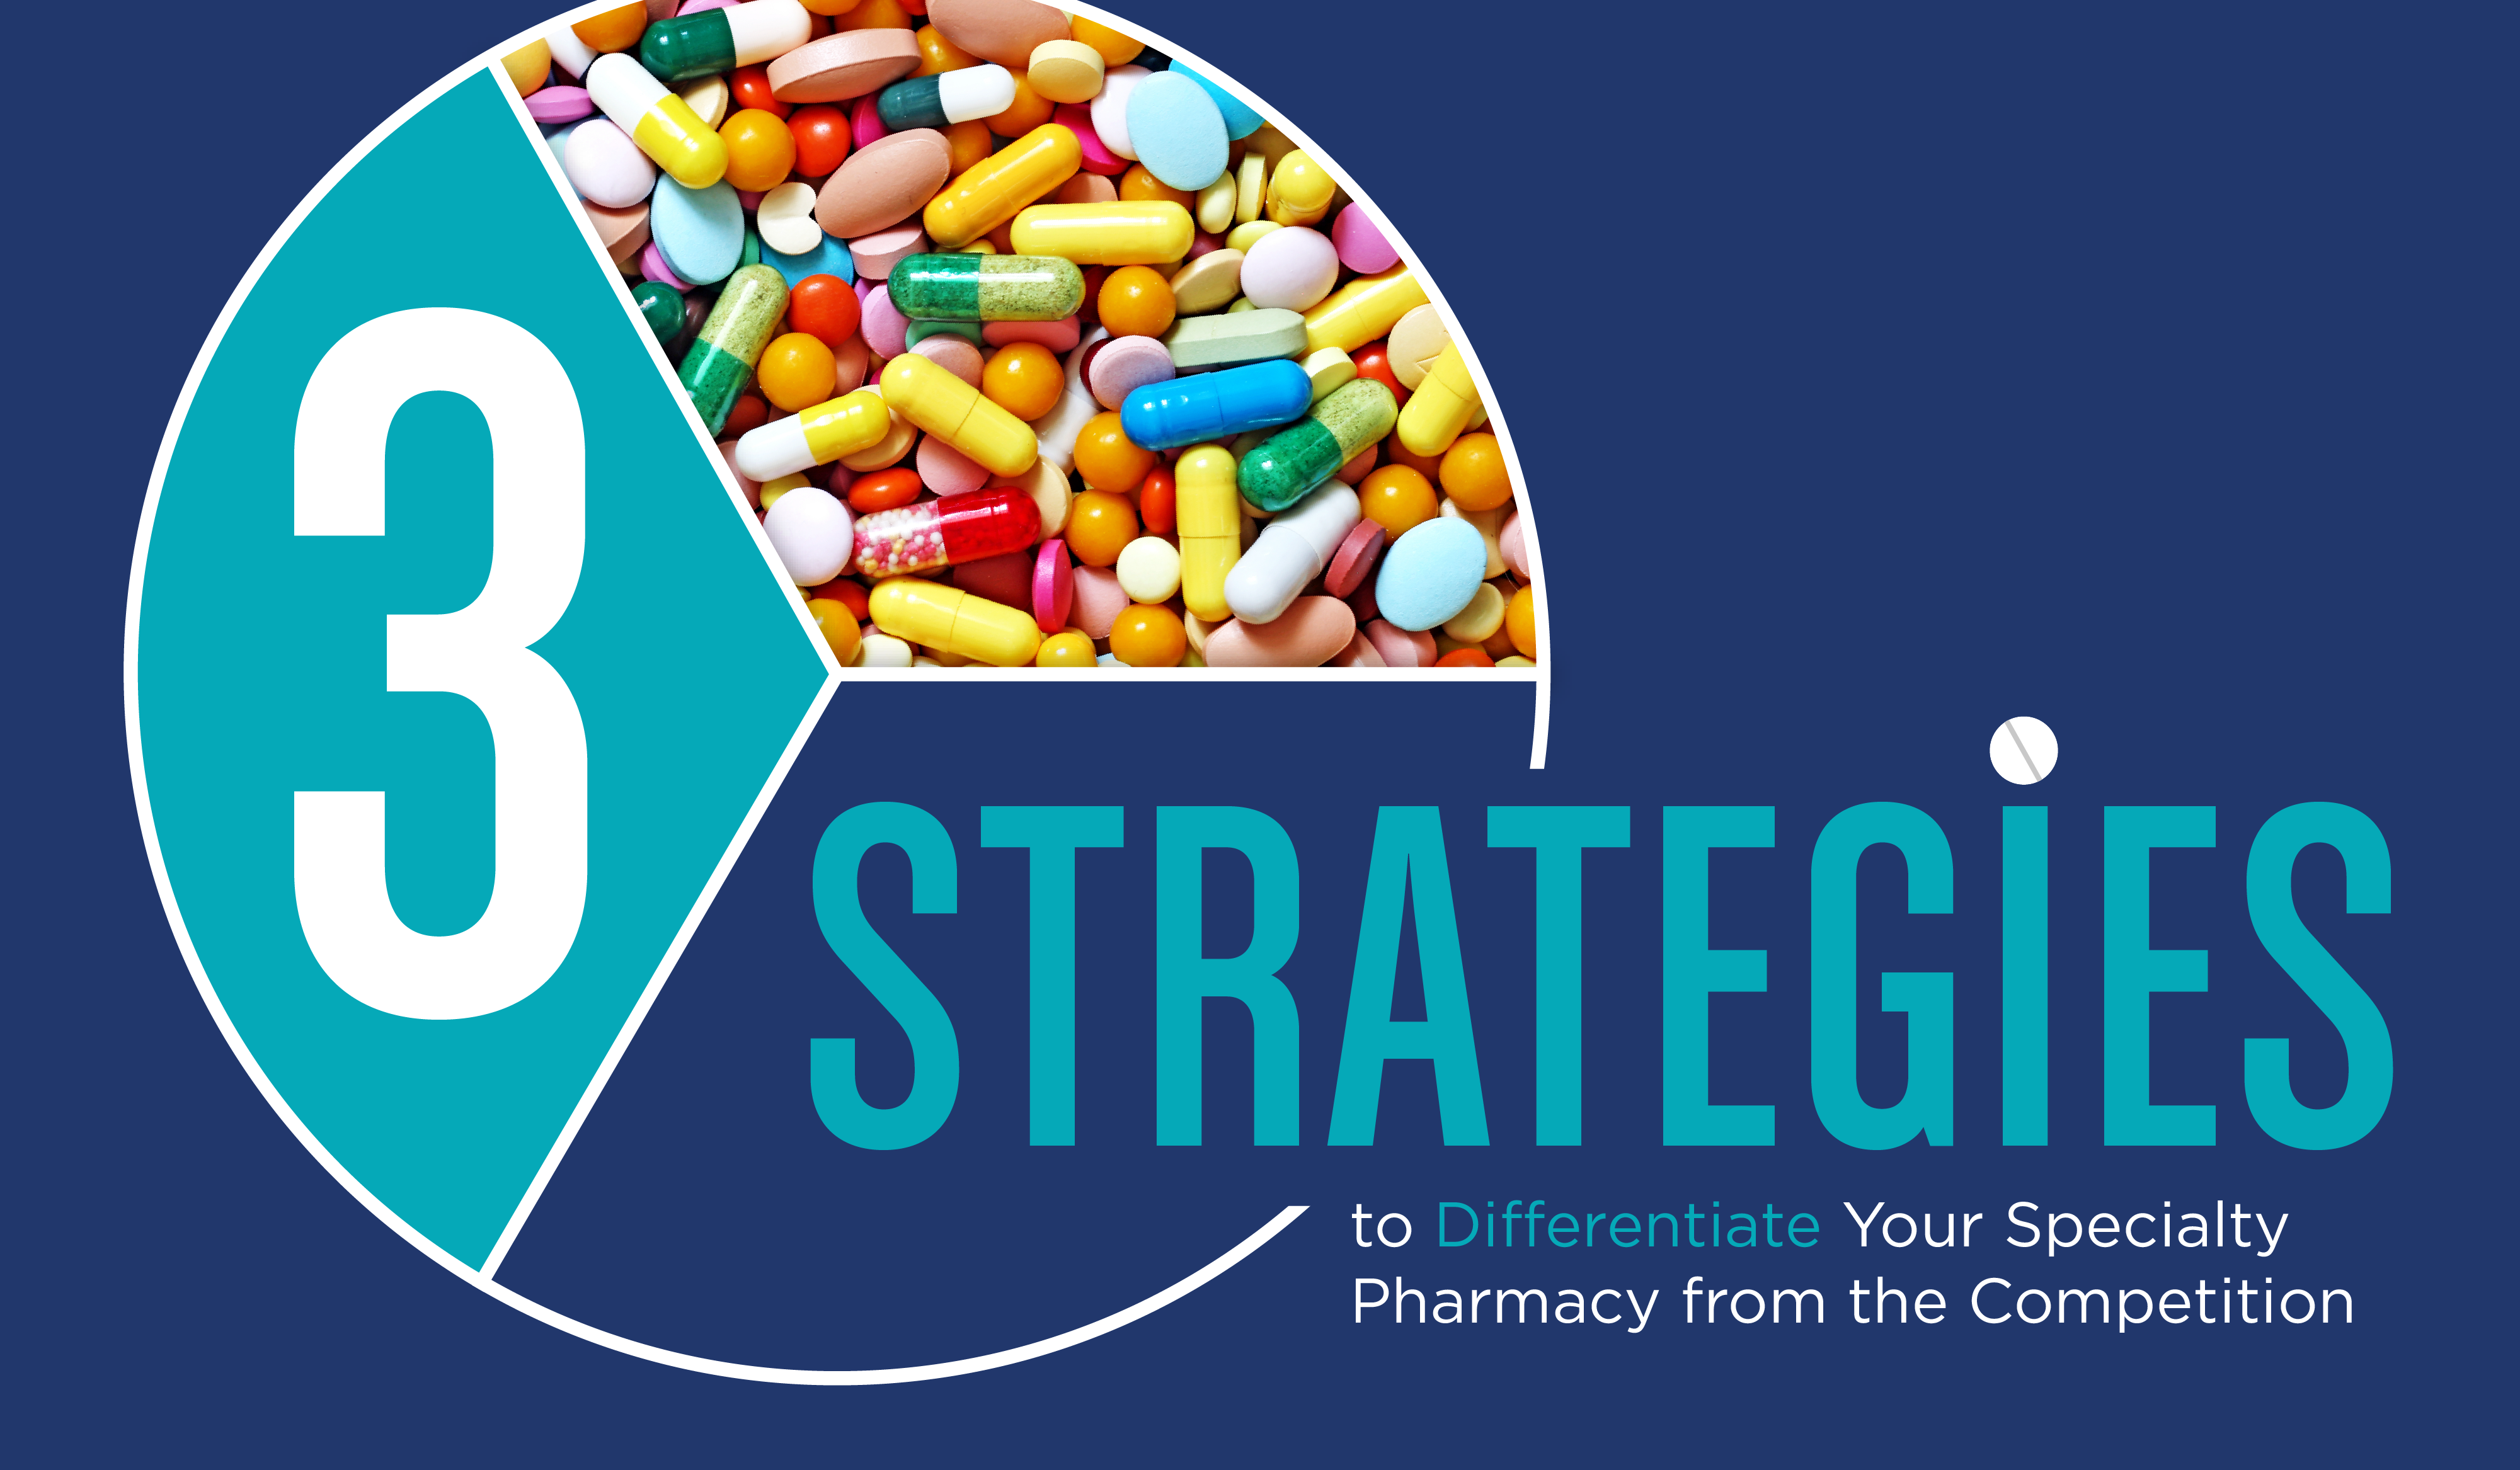 Three Strategies to Differentiate Your Specialty Pharmacy from the Competition blog-01